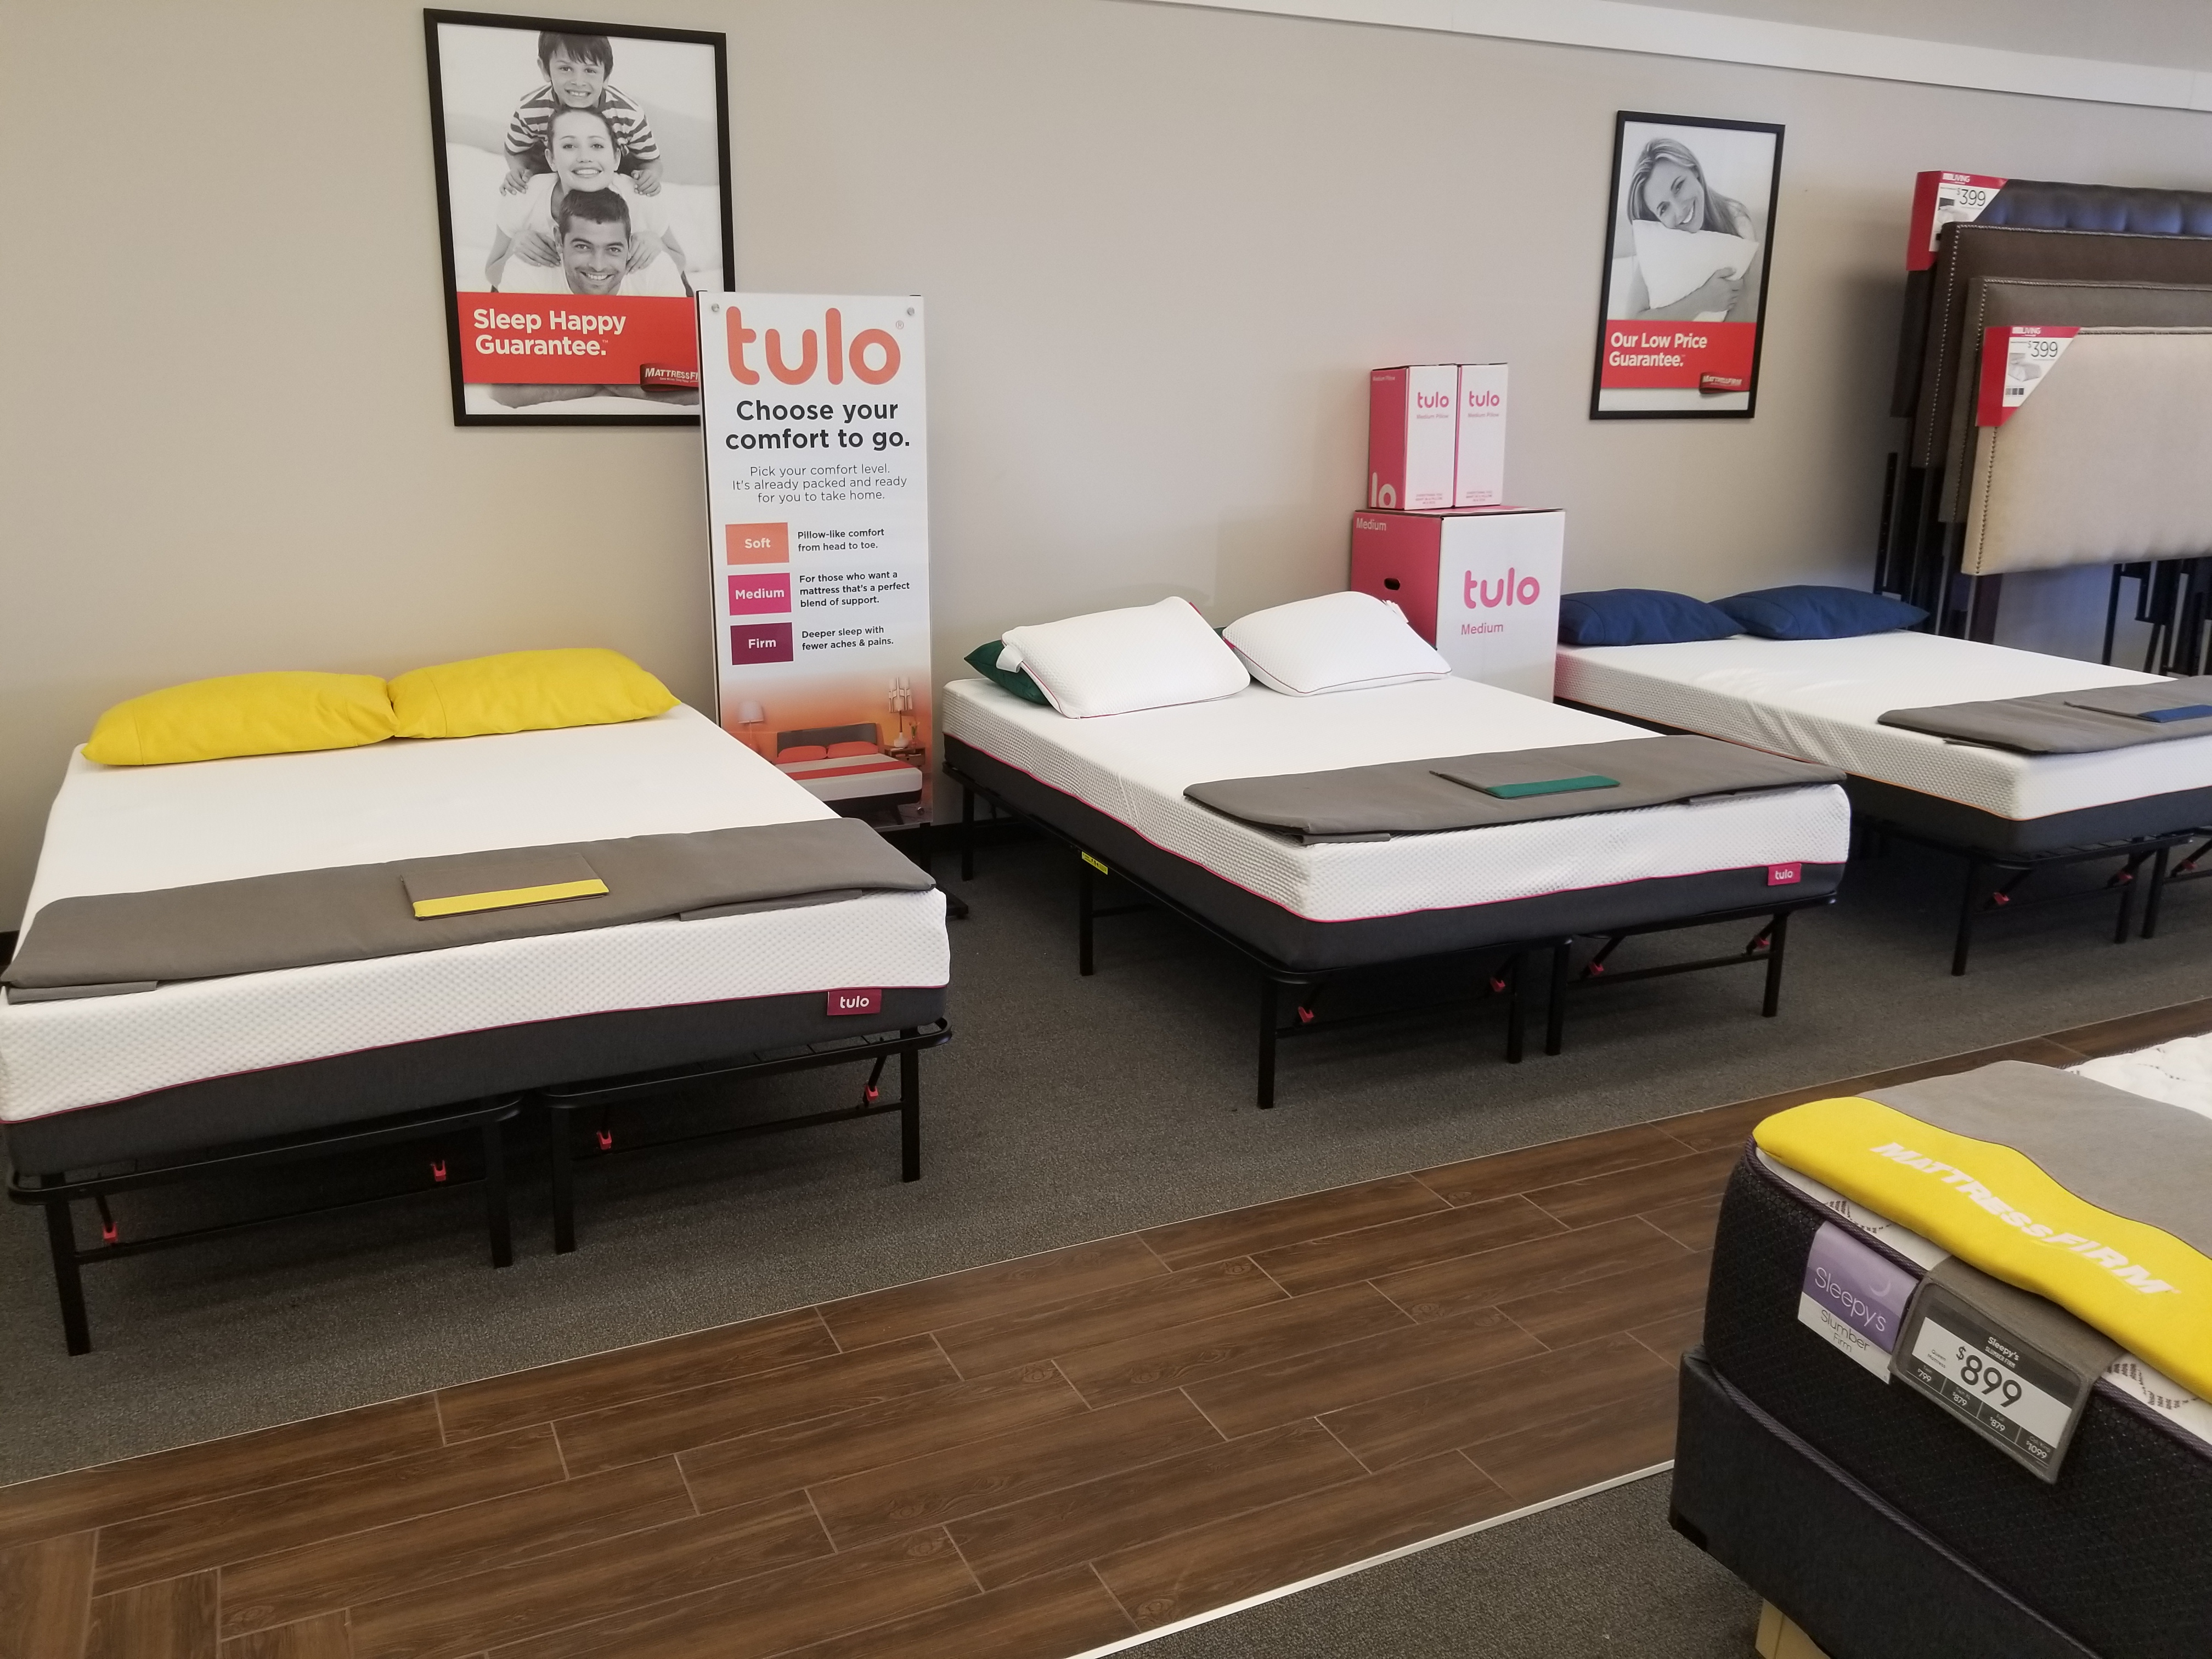 Mattress Firm Clearance - Closed image 4